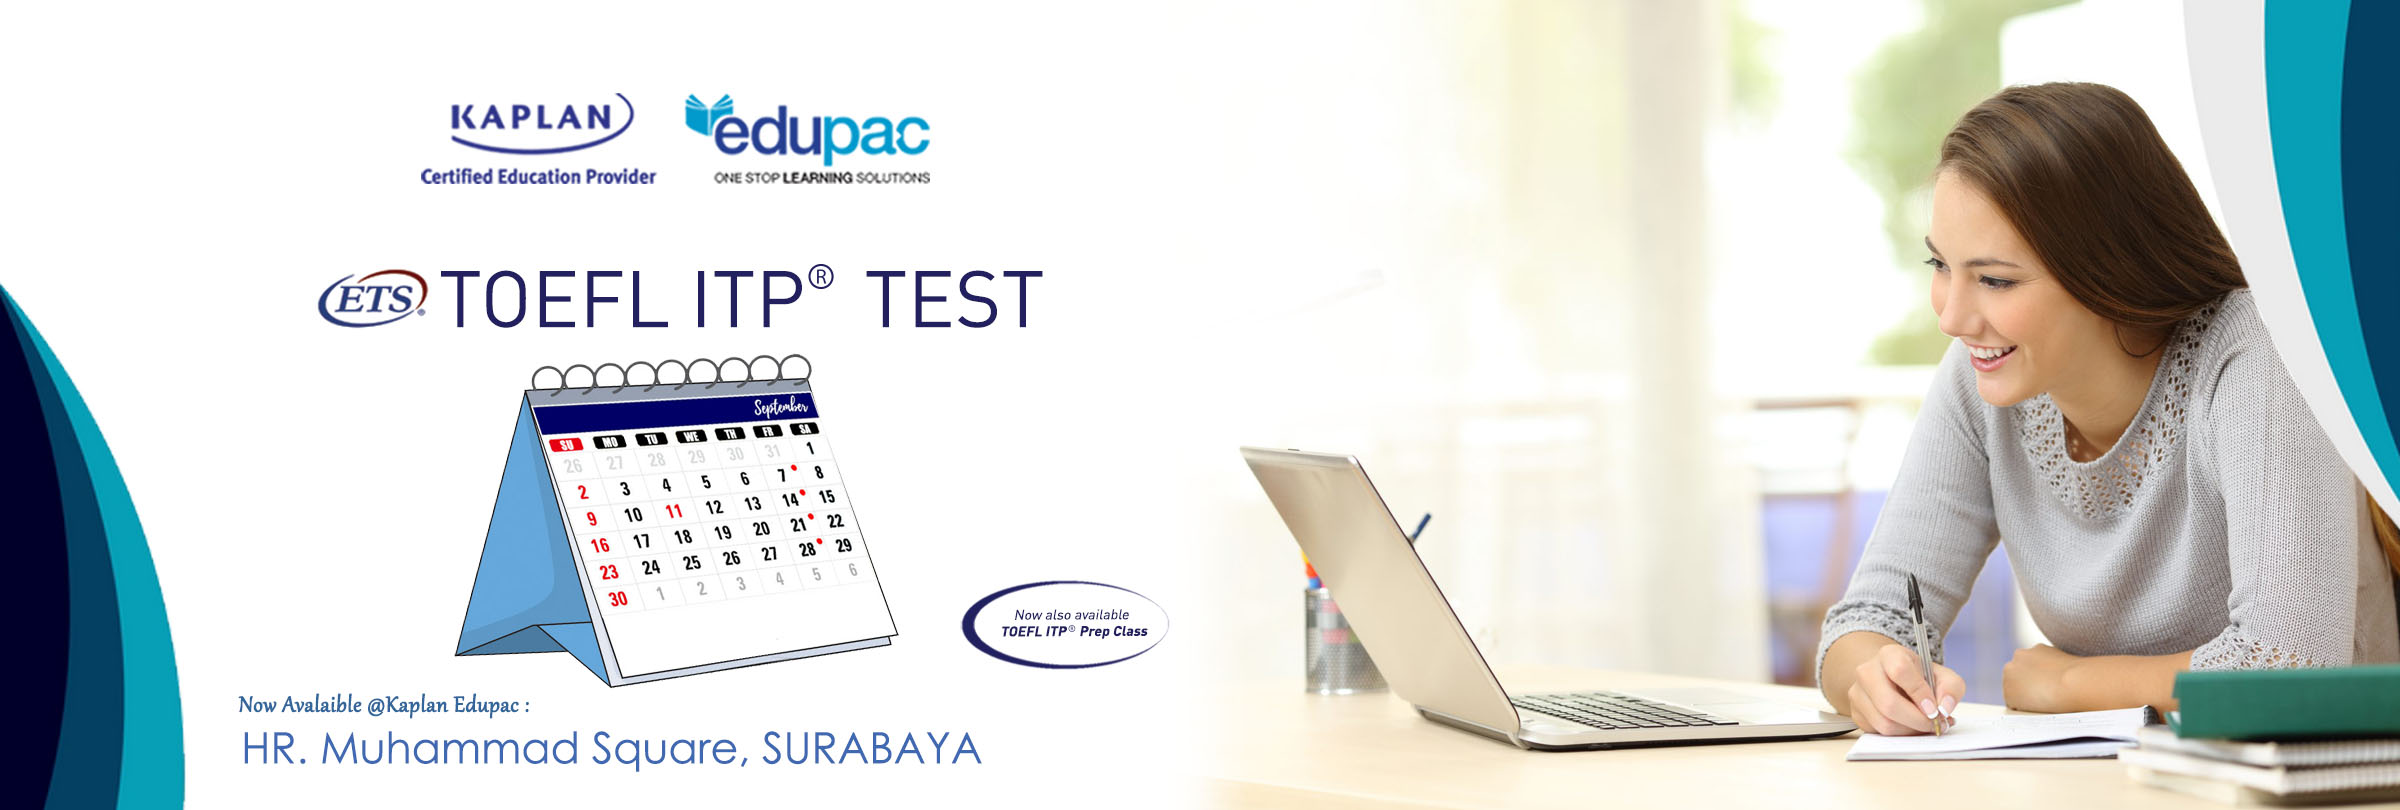 Surabaya TOEFL ITP Test Schedule for September 2018